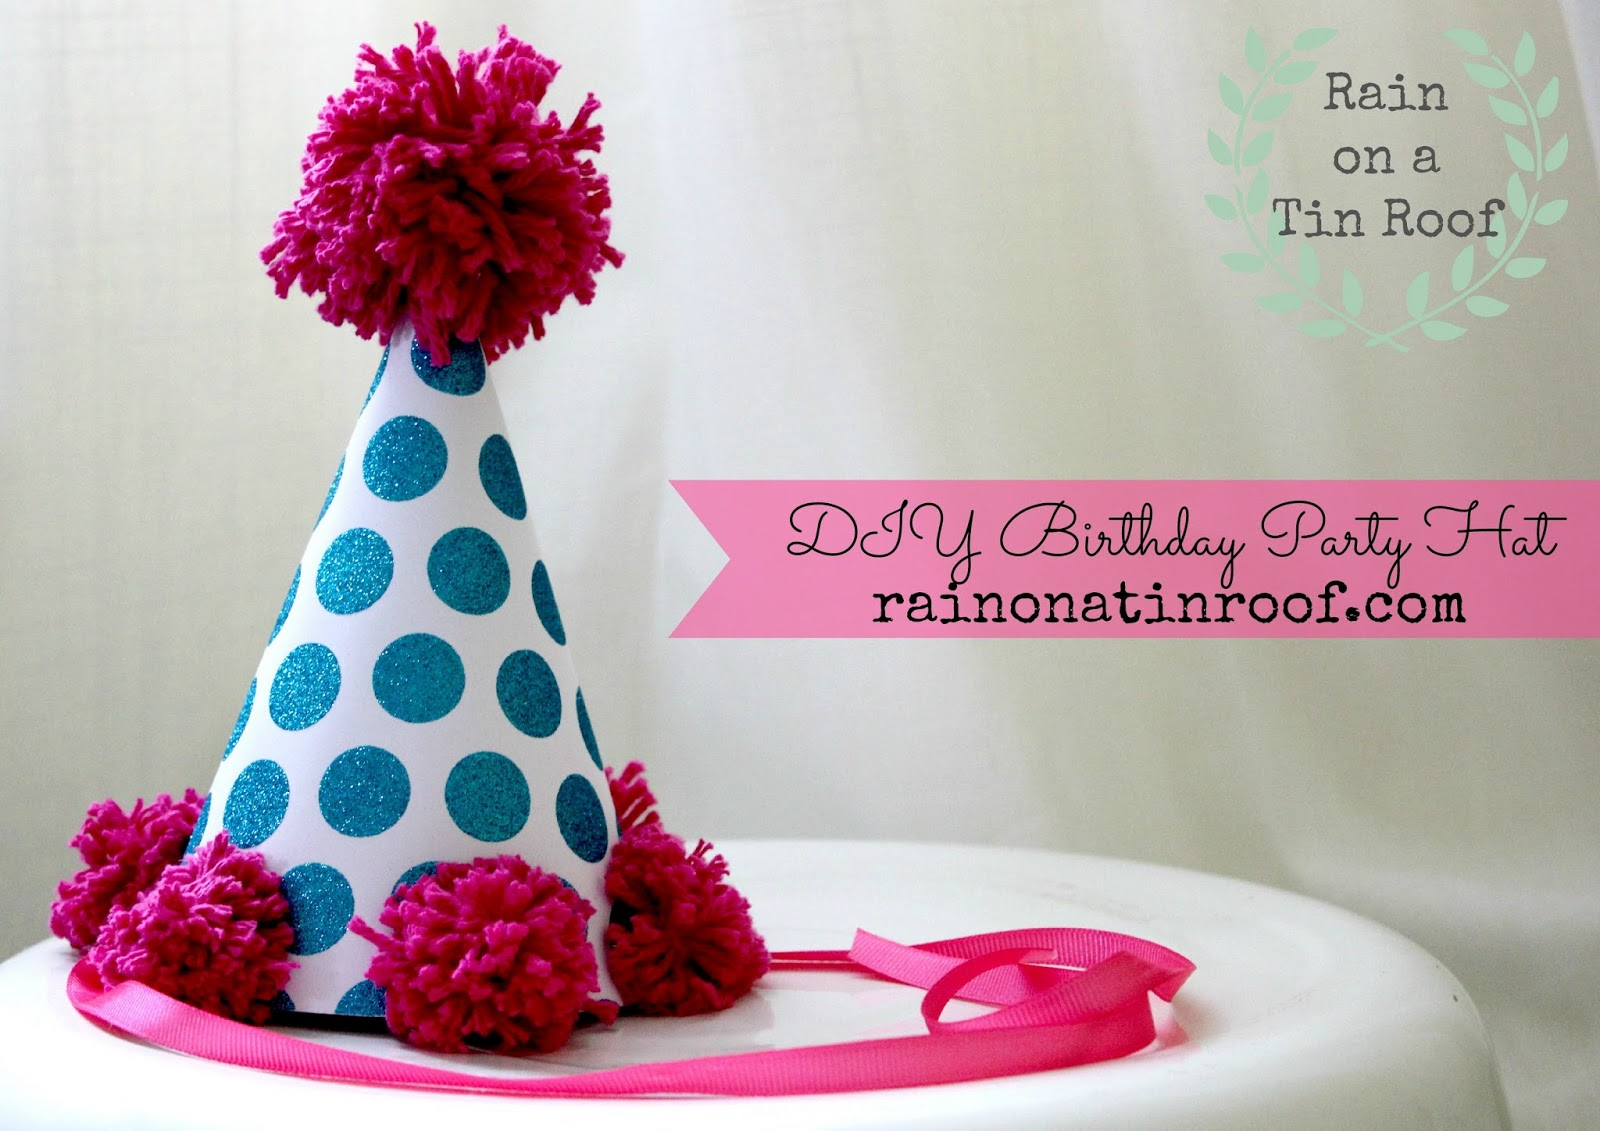 Birthda party hat cake topper